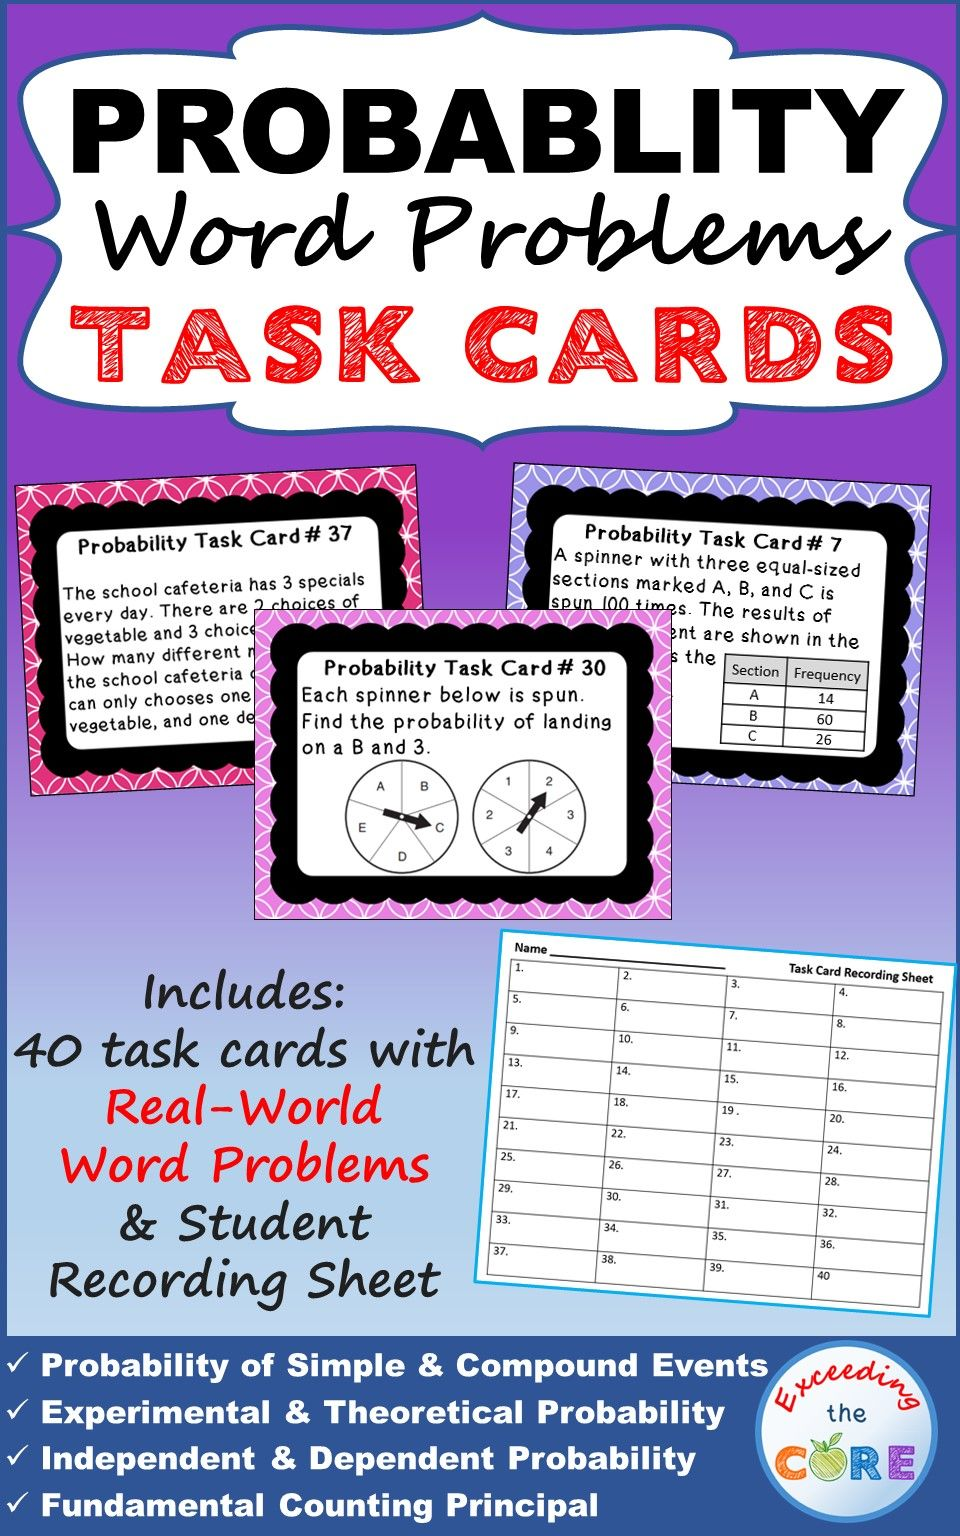 Probability Word Problems Task Cards 40 Cards Back To School Probability Word Problems Word Problems Word Problems Task Cards